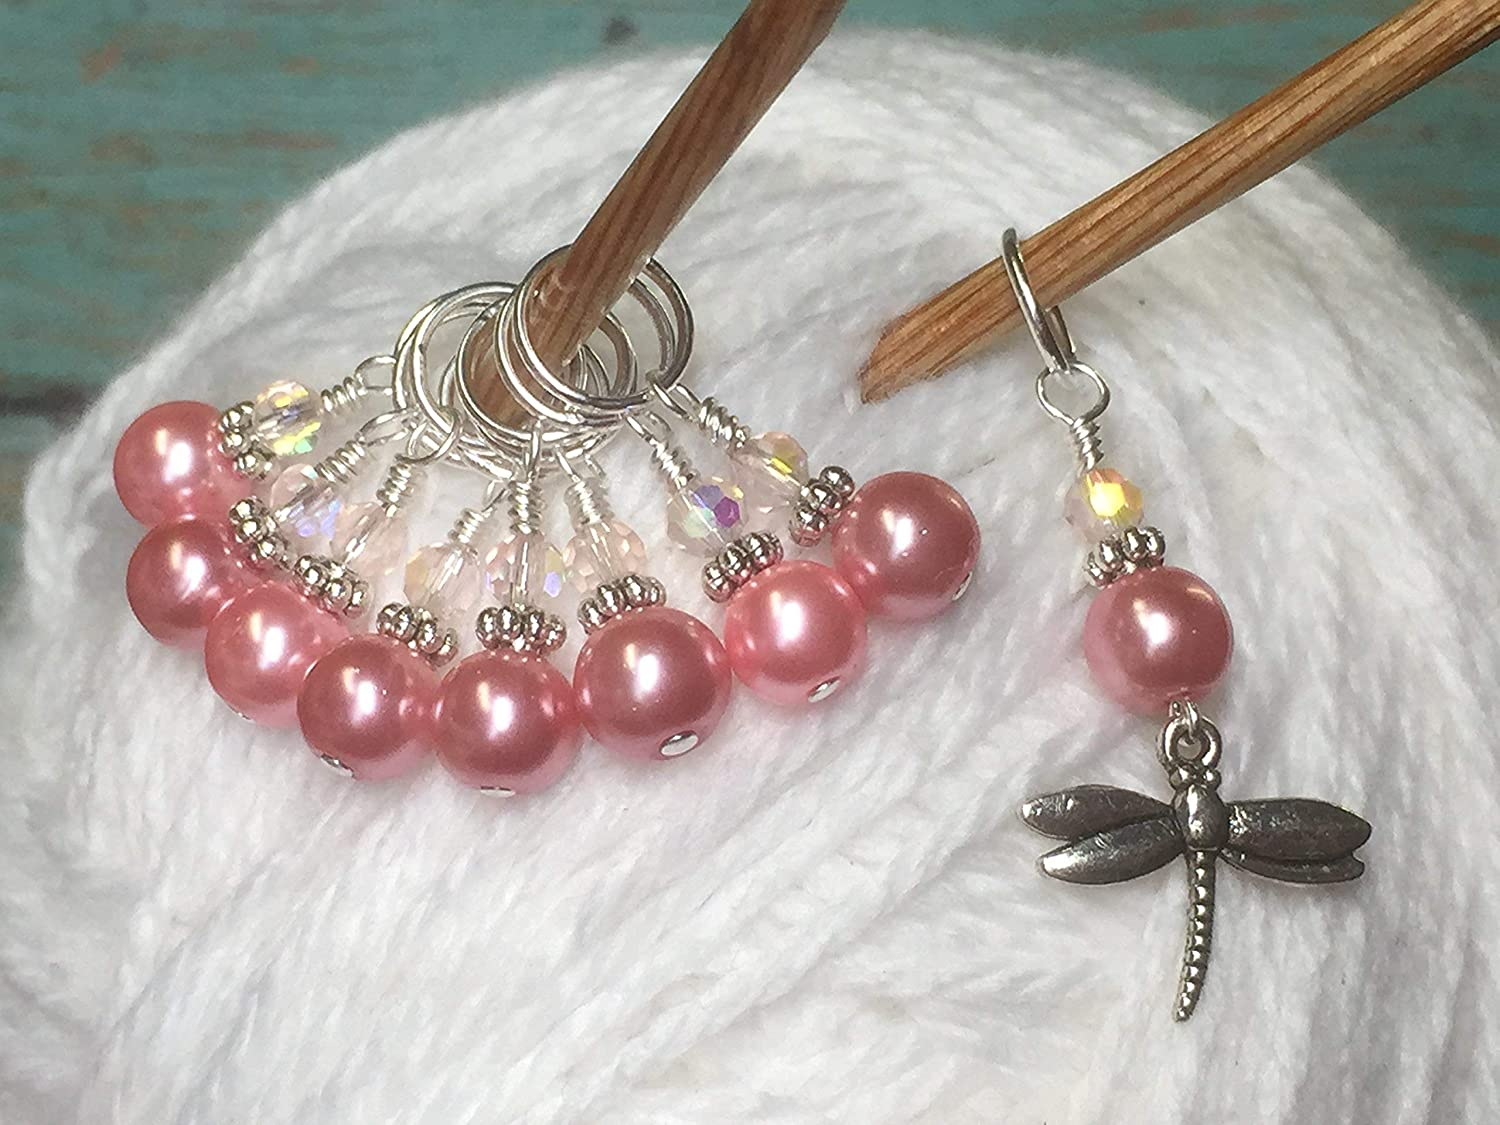 Snag Free Pink Dragonfly Knitting Stitch Marker Set